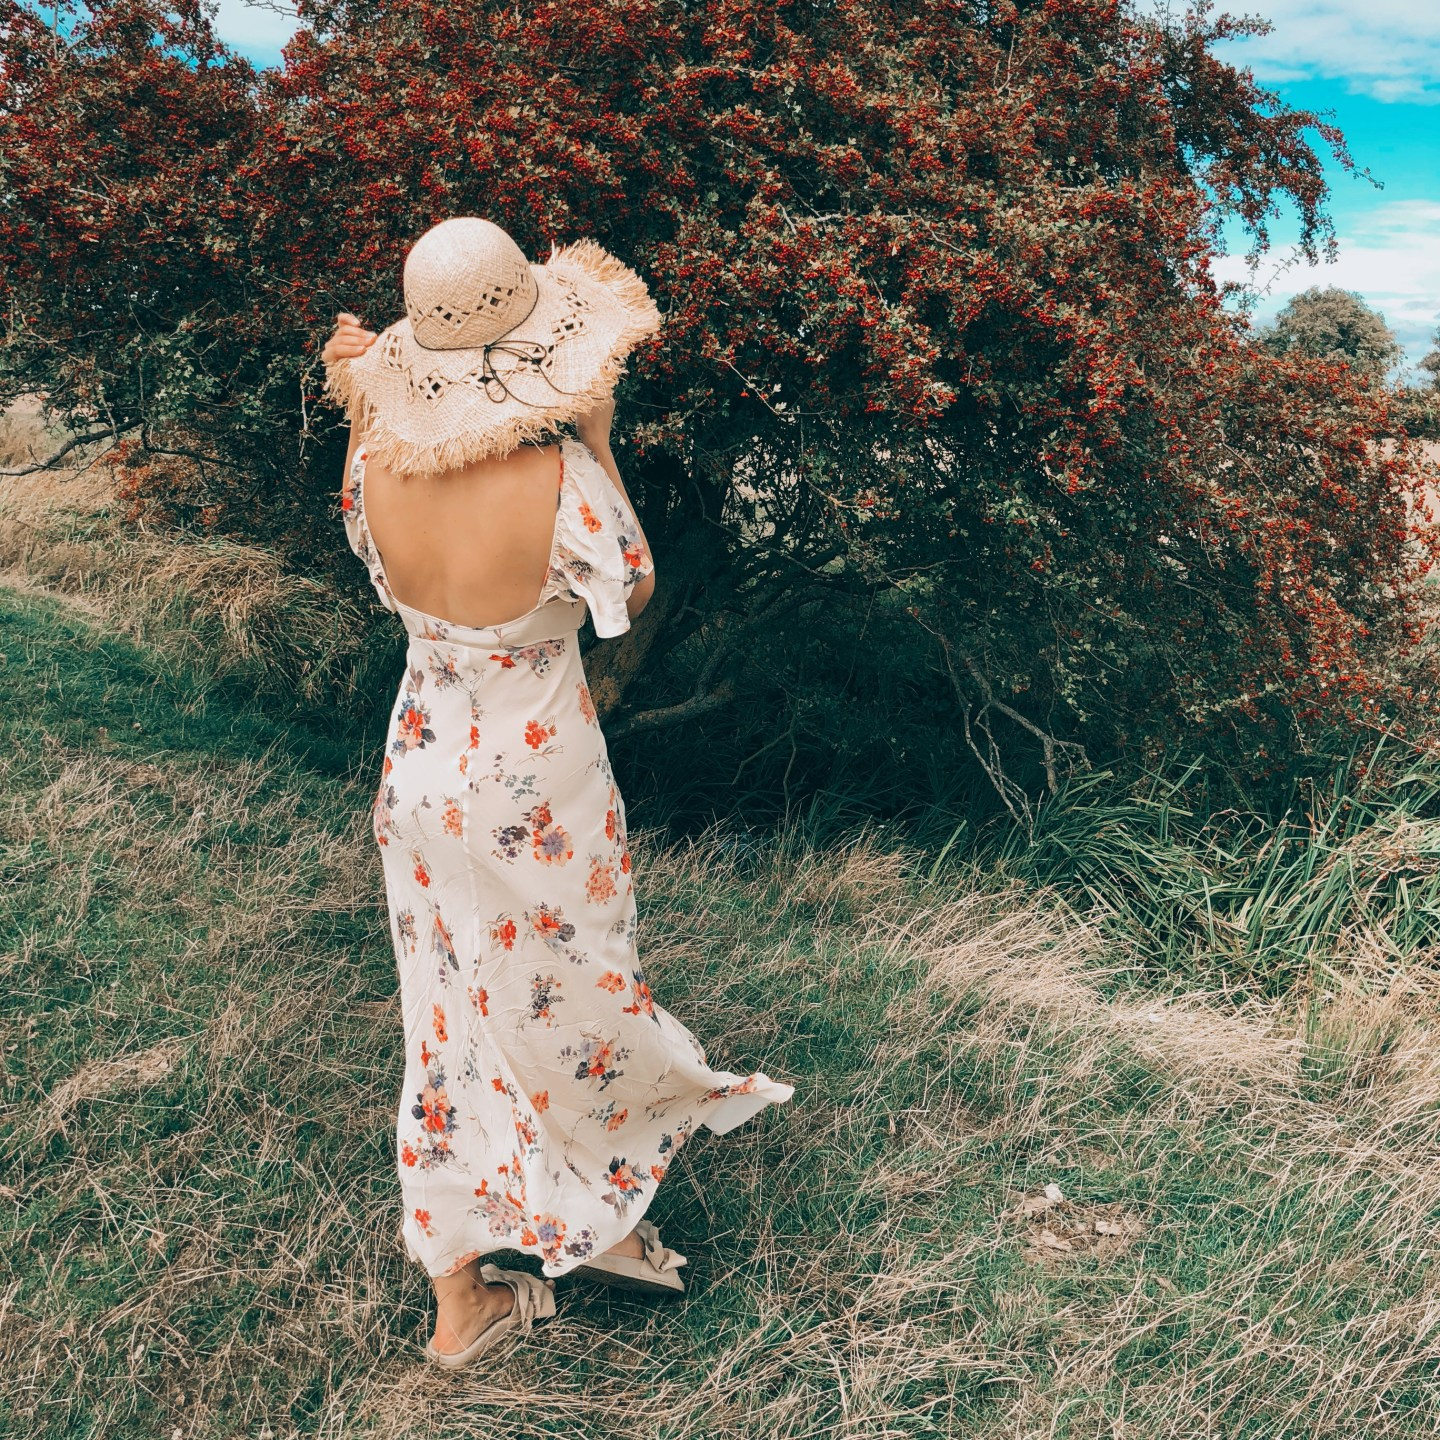 UK STAYCATION IDEAS: a girl in a rural landscape wearing a long summer dress and a straw hat